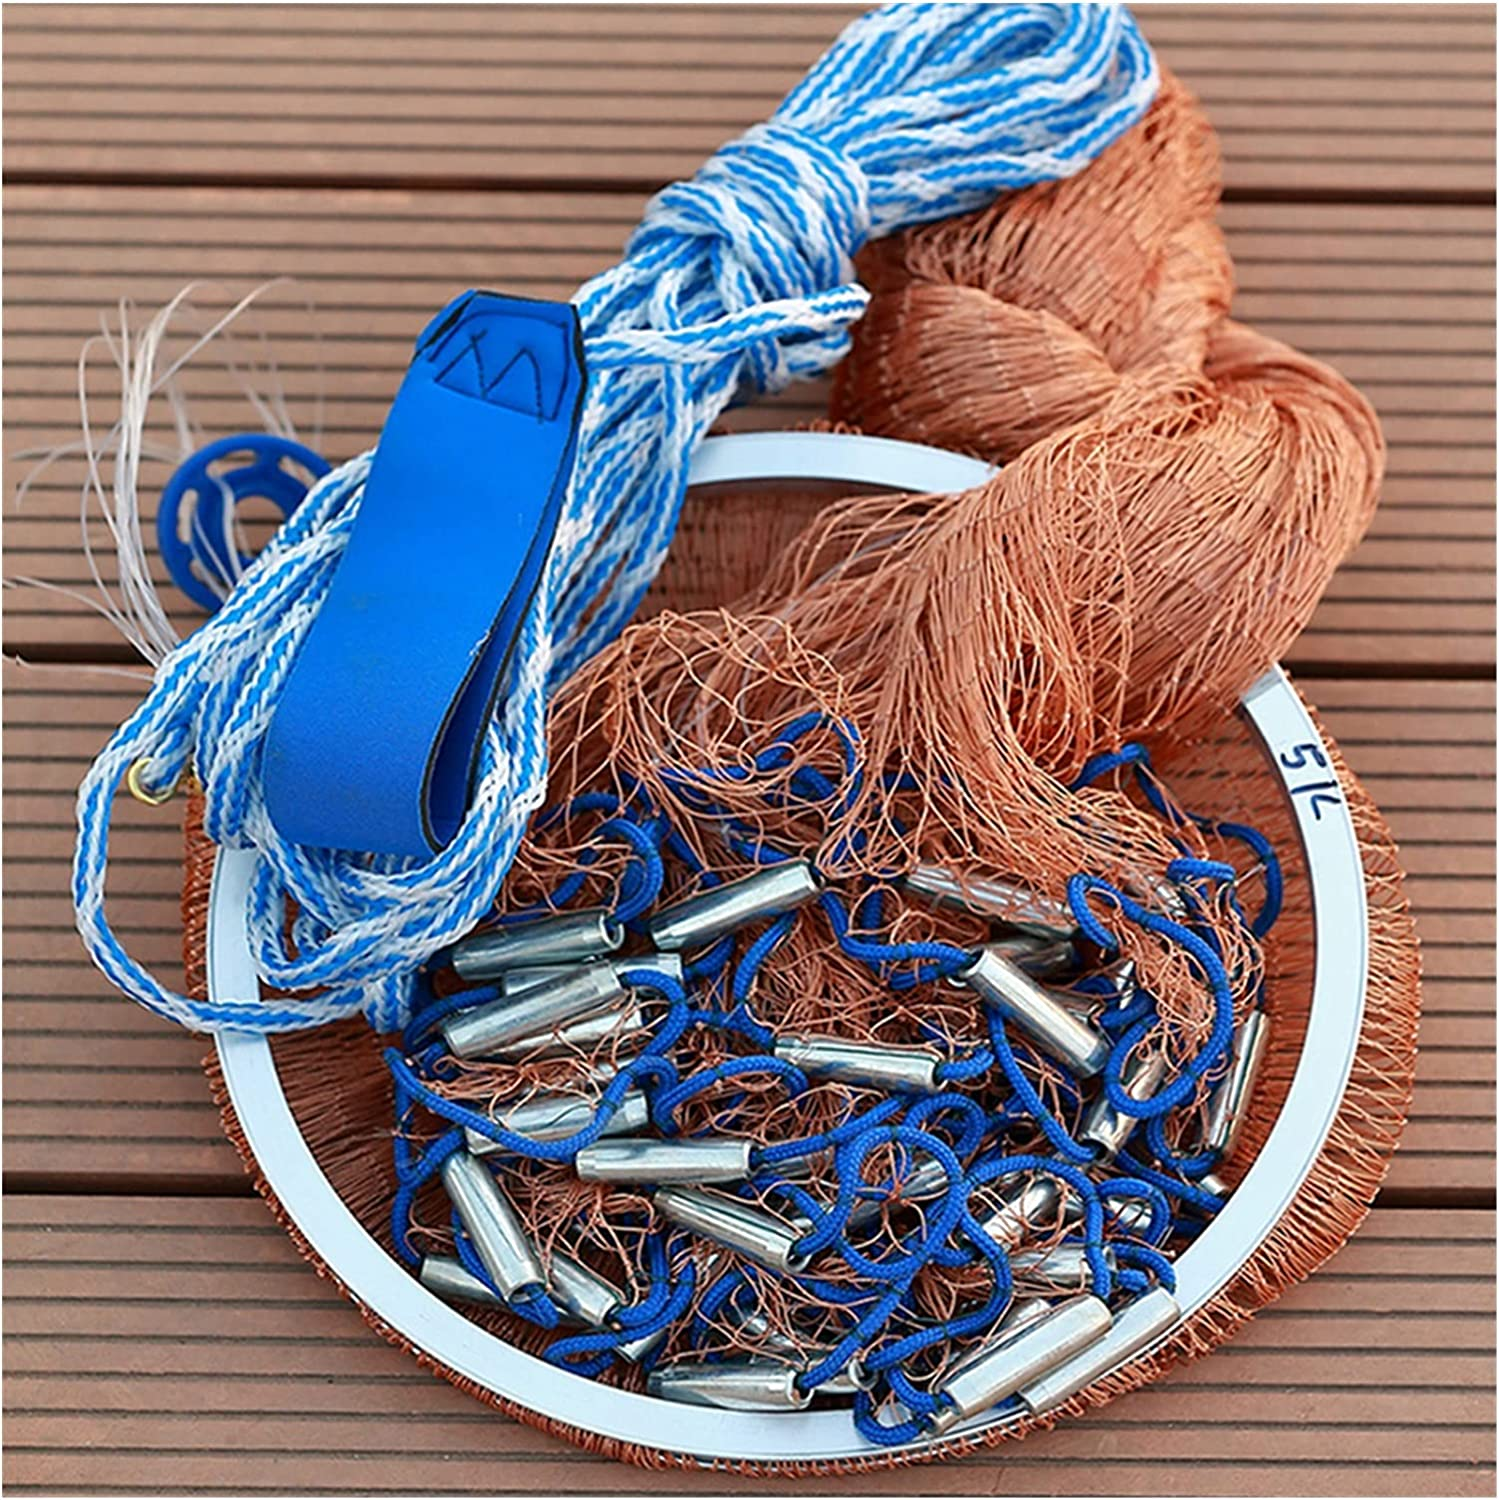 FRSDMY Max 80% OFF Soldering Fishing Net Casting Throwin Wire Network Braided